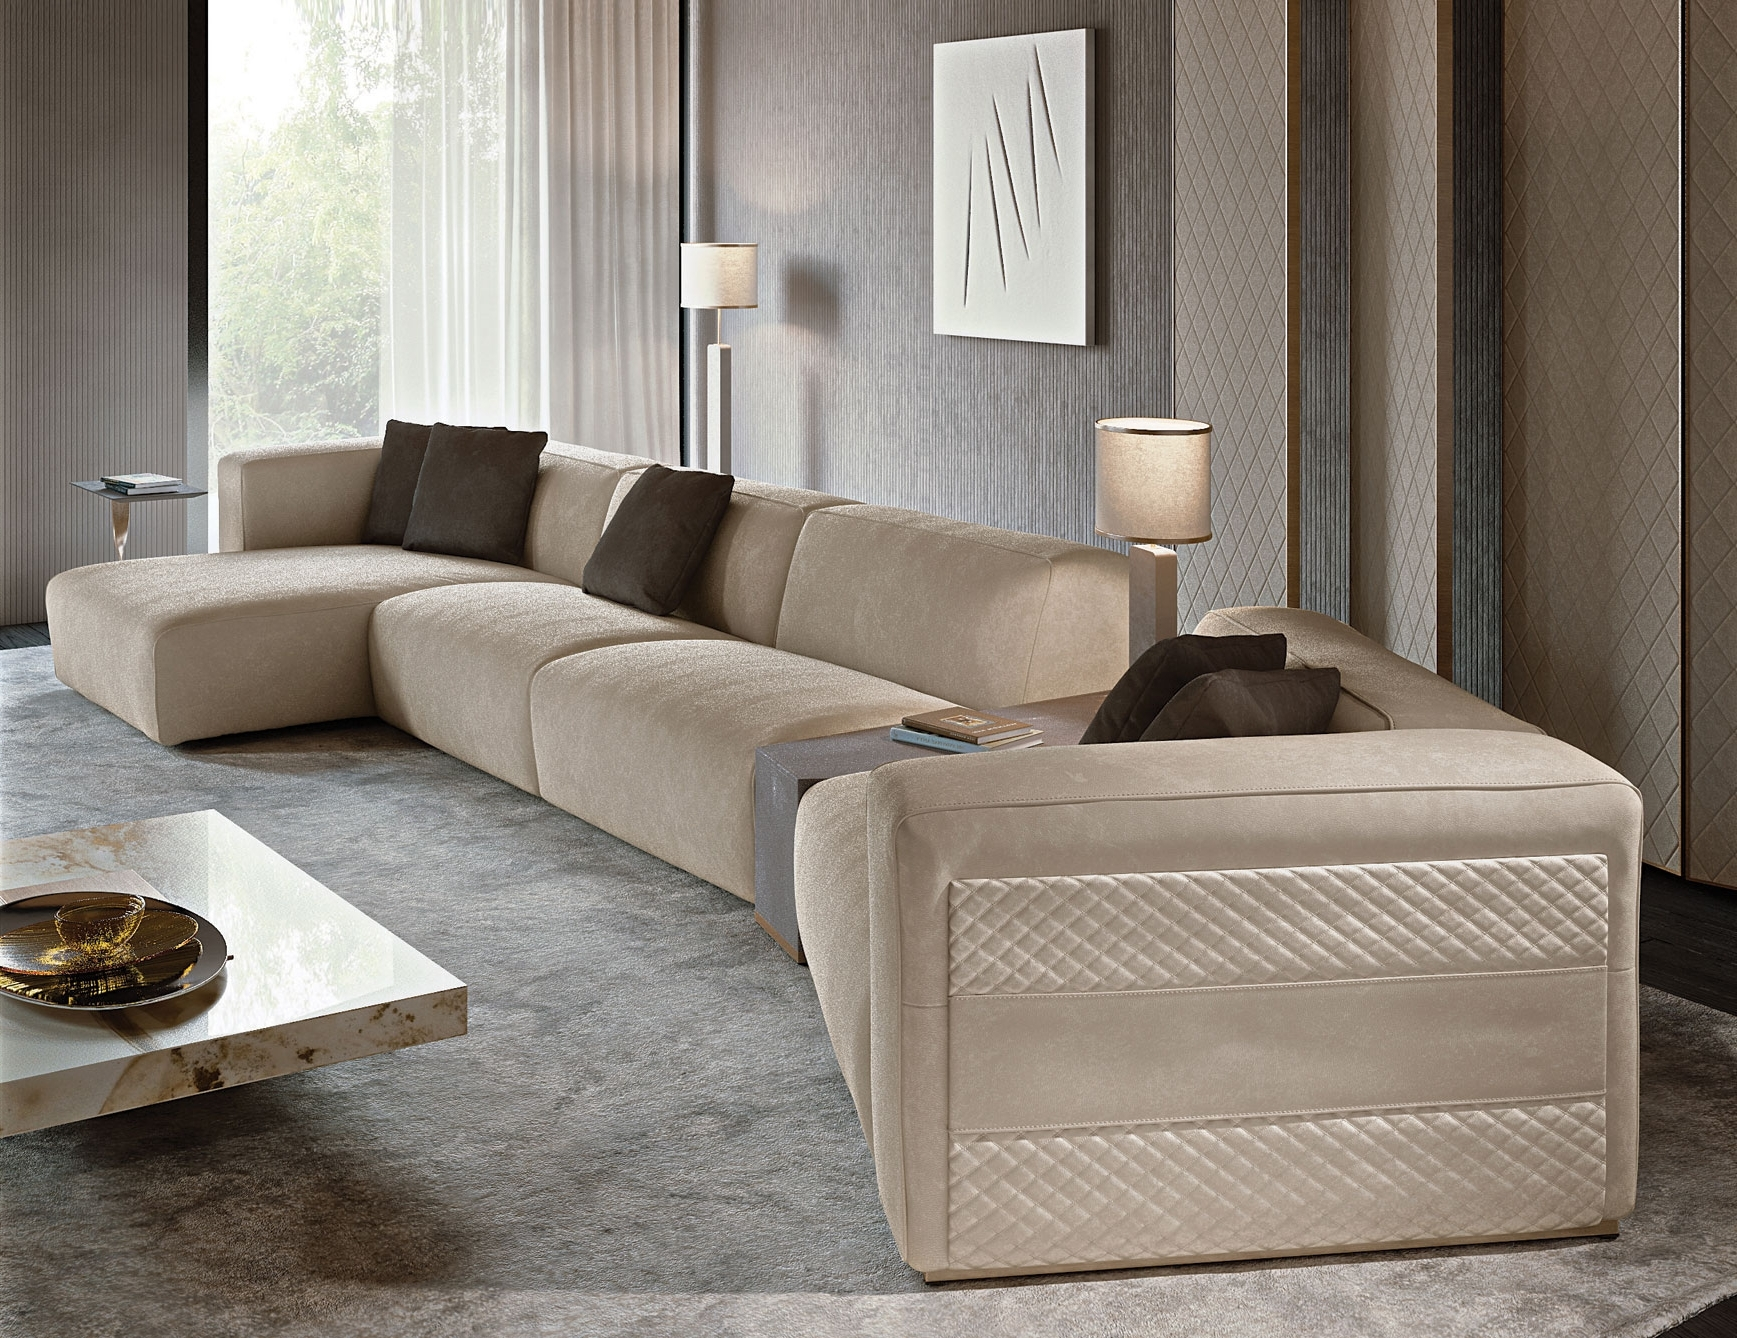 Current Nella Vetrina Rugiano Freud Sectional Sofa In Suede In High End Sectional Sofas (View 5 of 20)